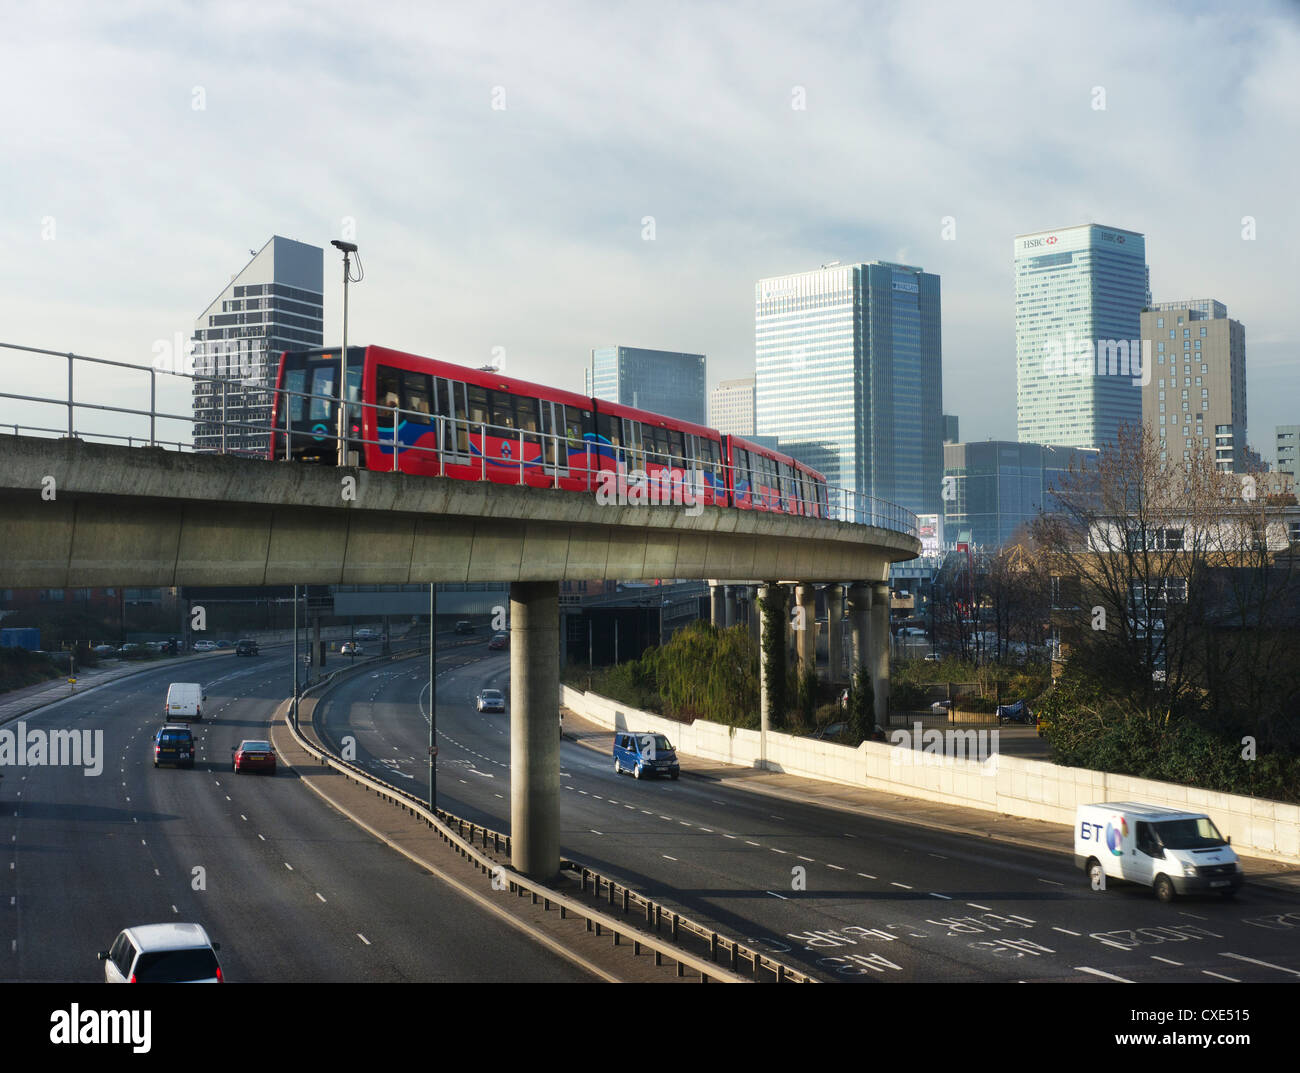 Overground train departing for canary wharf financial district, London, England, UK - Stock Image